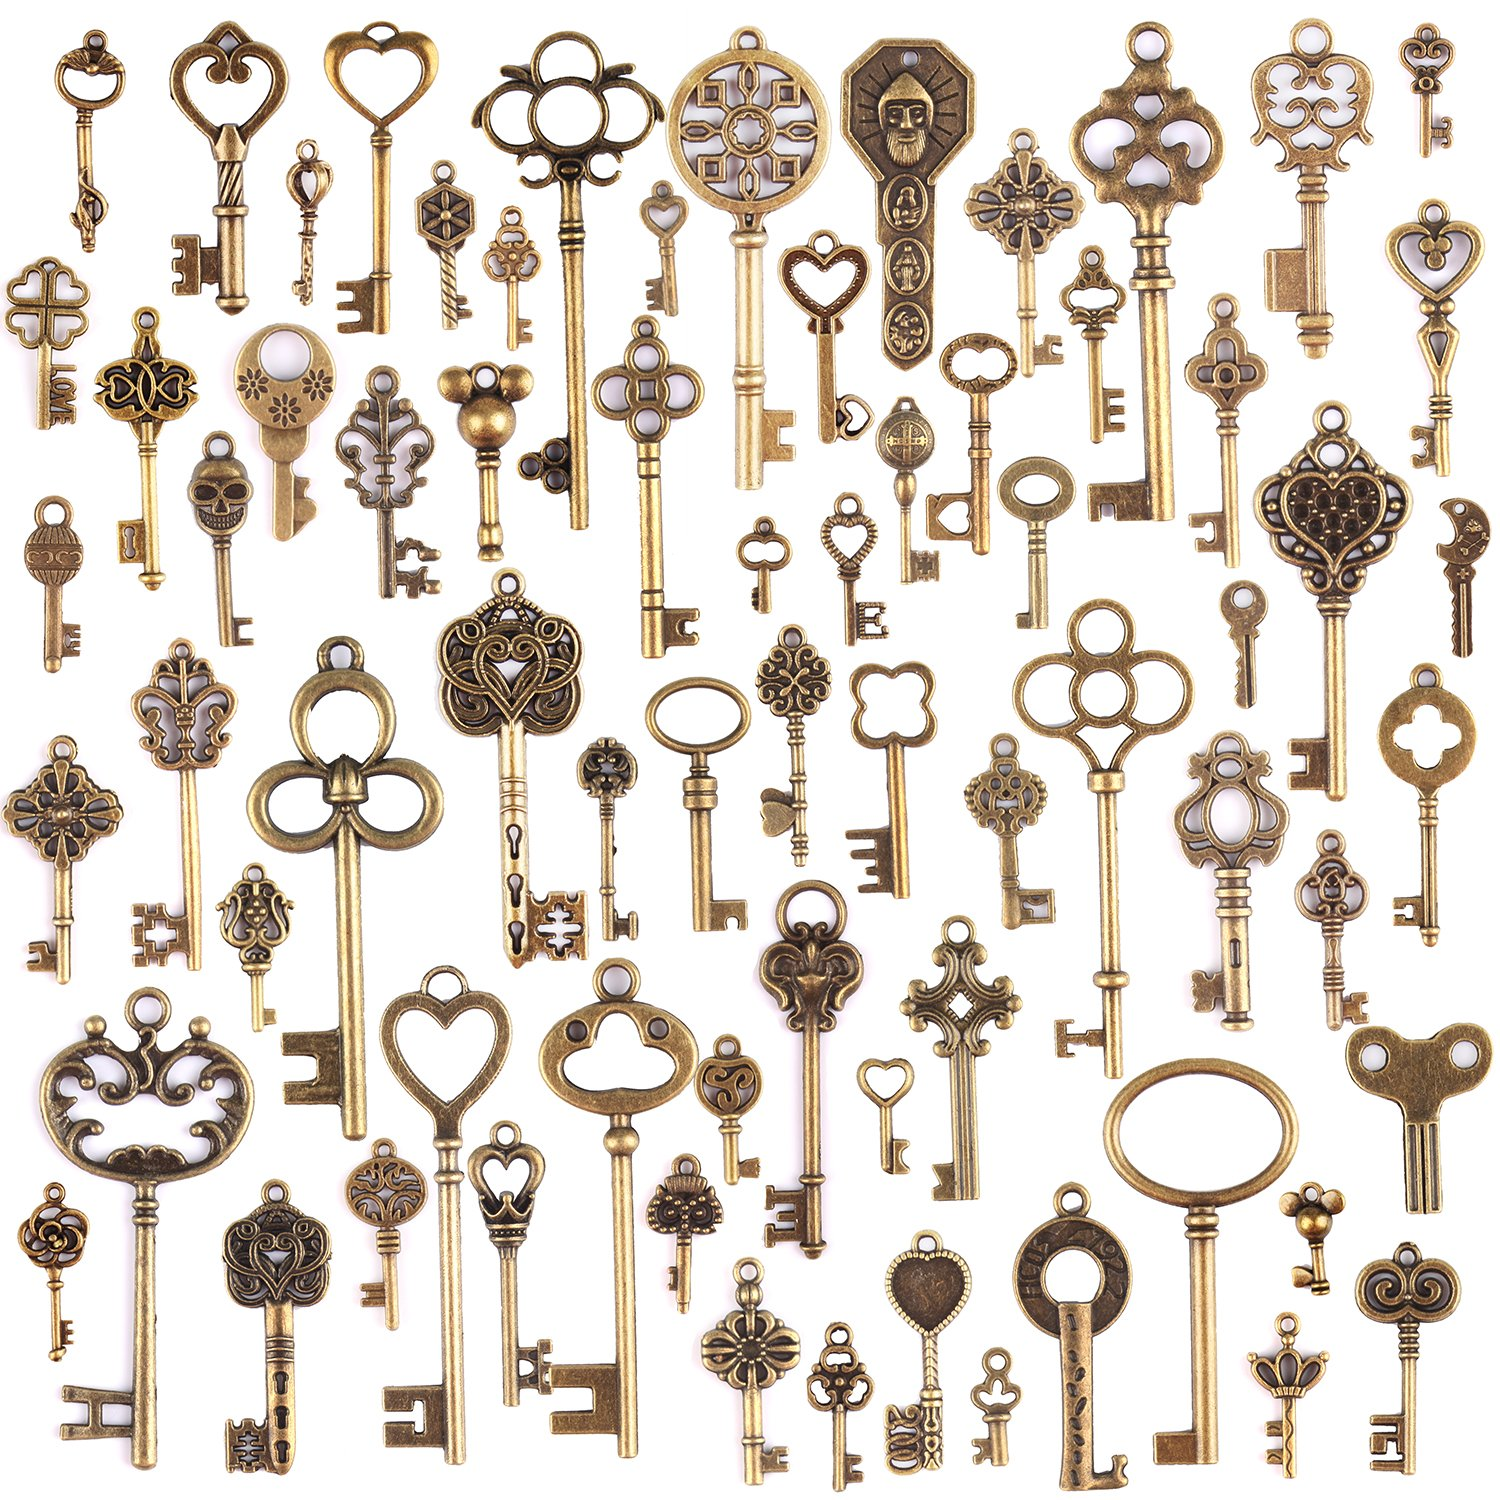 KeyZone 100 Pcs Vintage Antique Bronze Mixed Skeleton Key Charms Pendants DIY for Jewelry Making and Handmaking